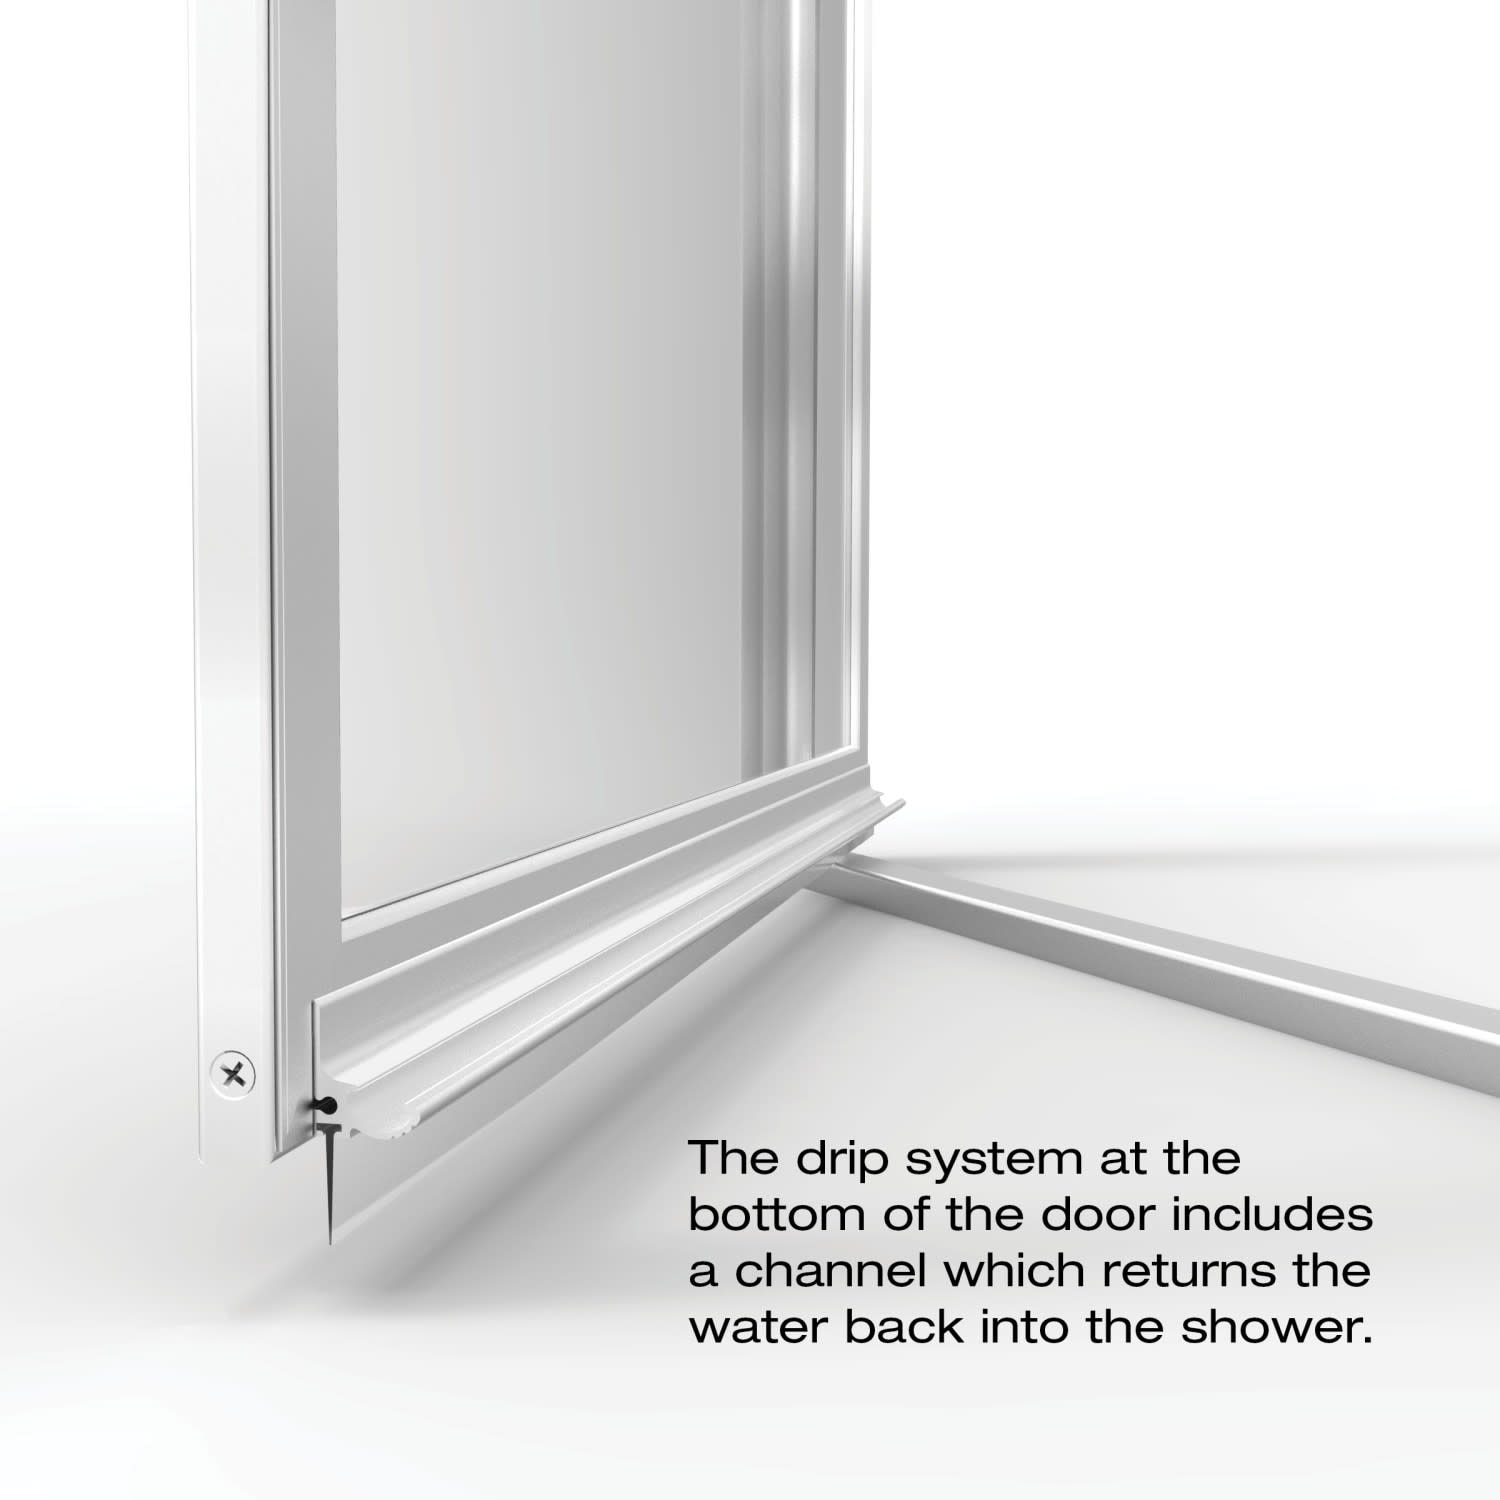 Basco A002 7xp Deluxe 67 High X 32 7 8 Wide Pivot Framed Shower Door With Aquaglidexp Clear Glass